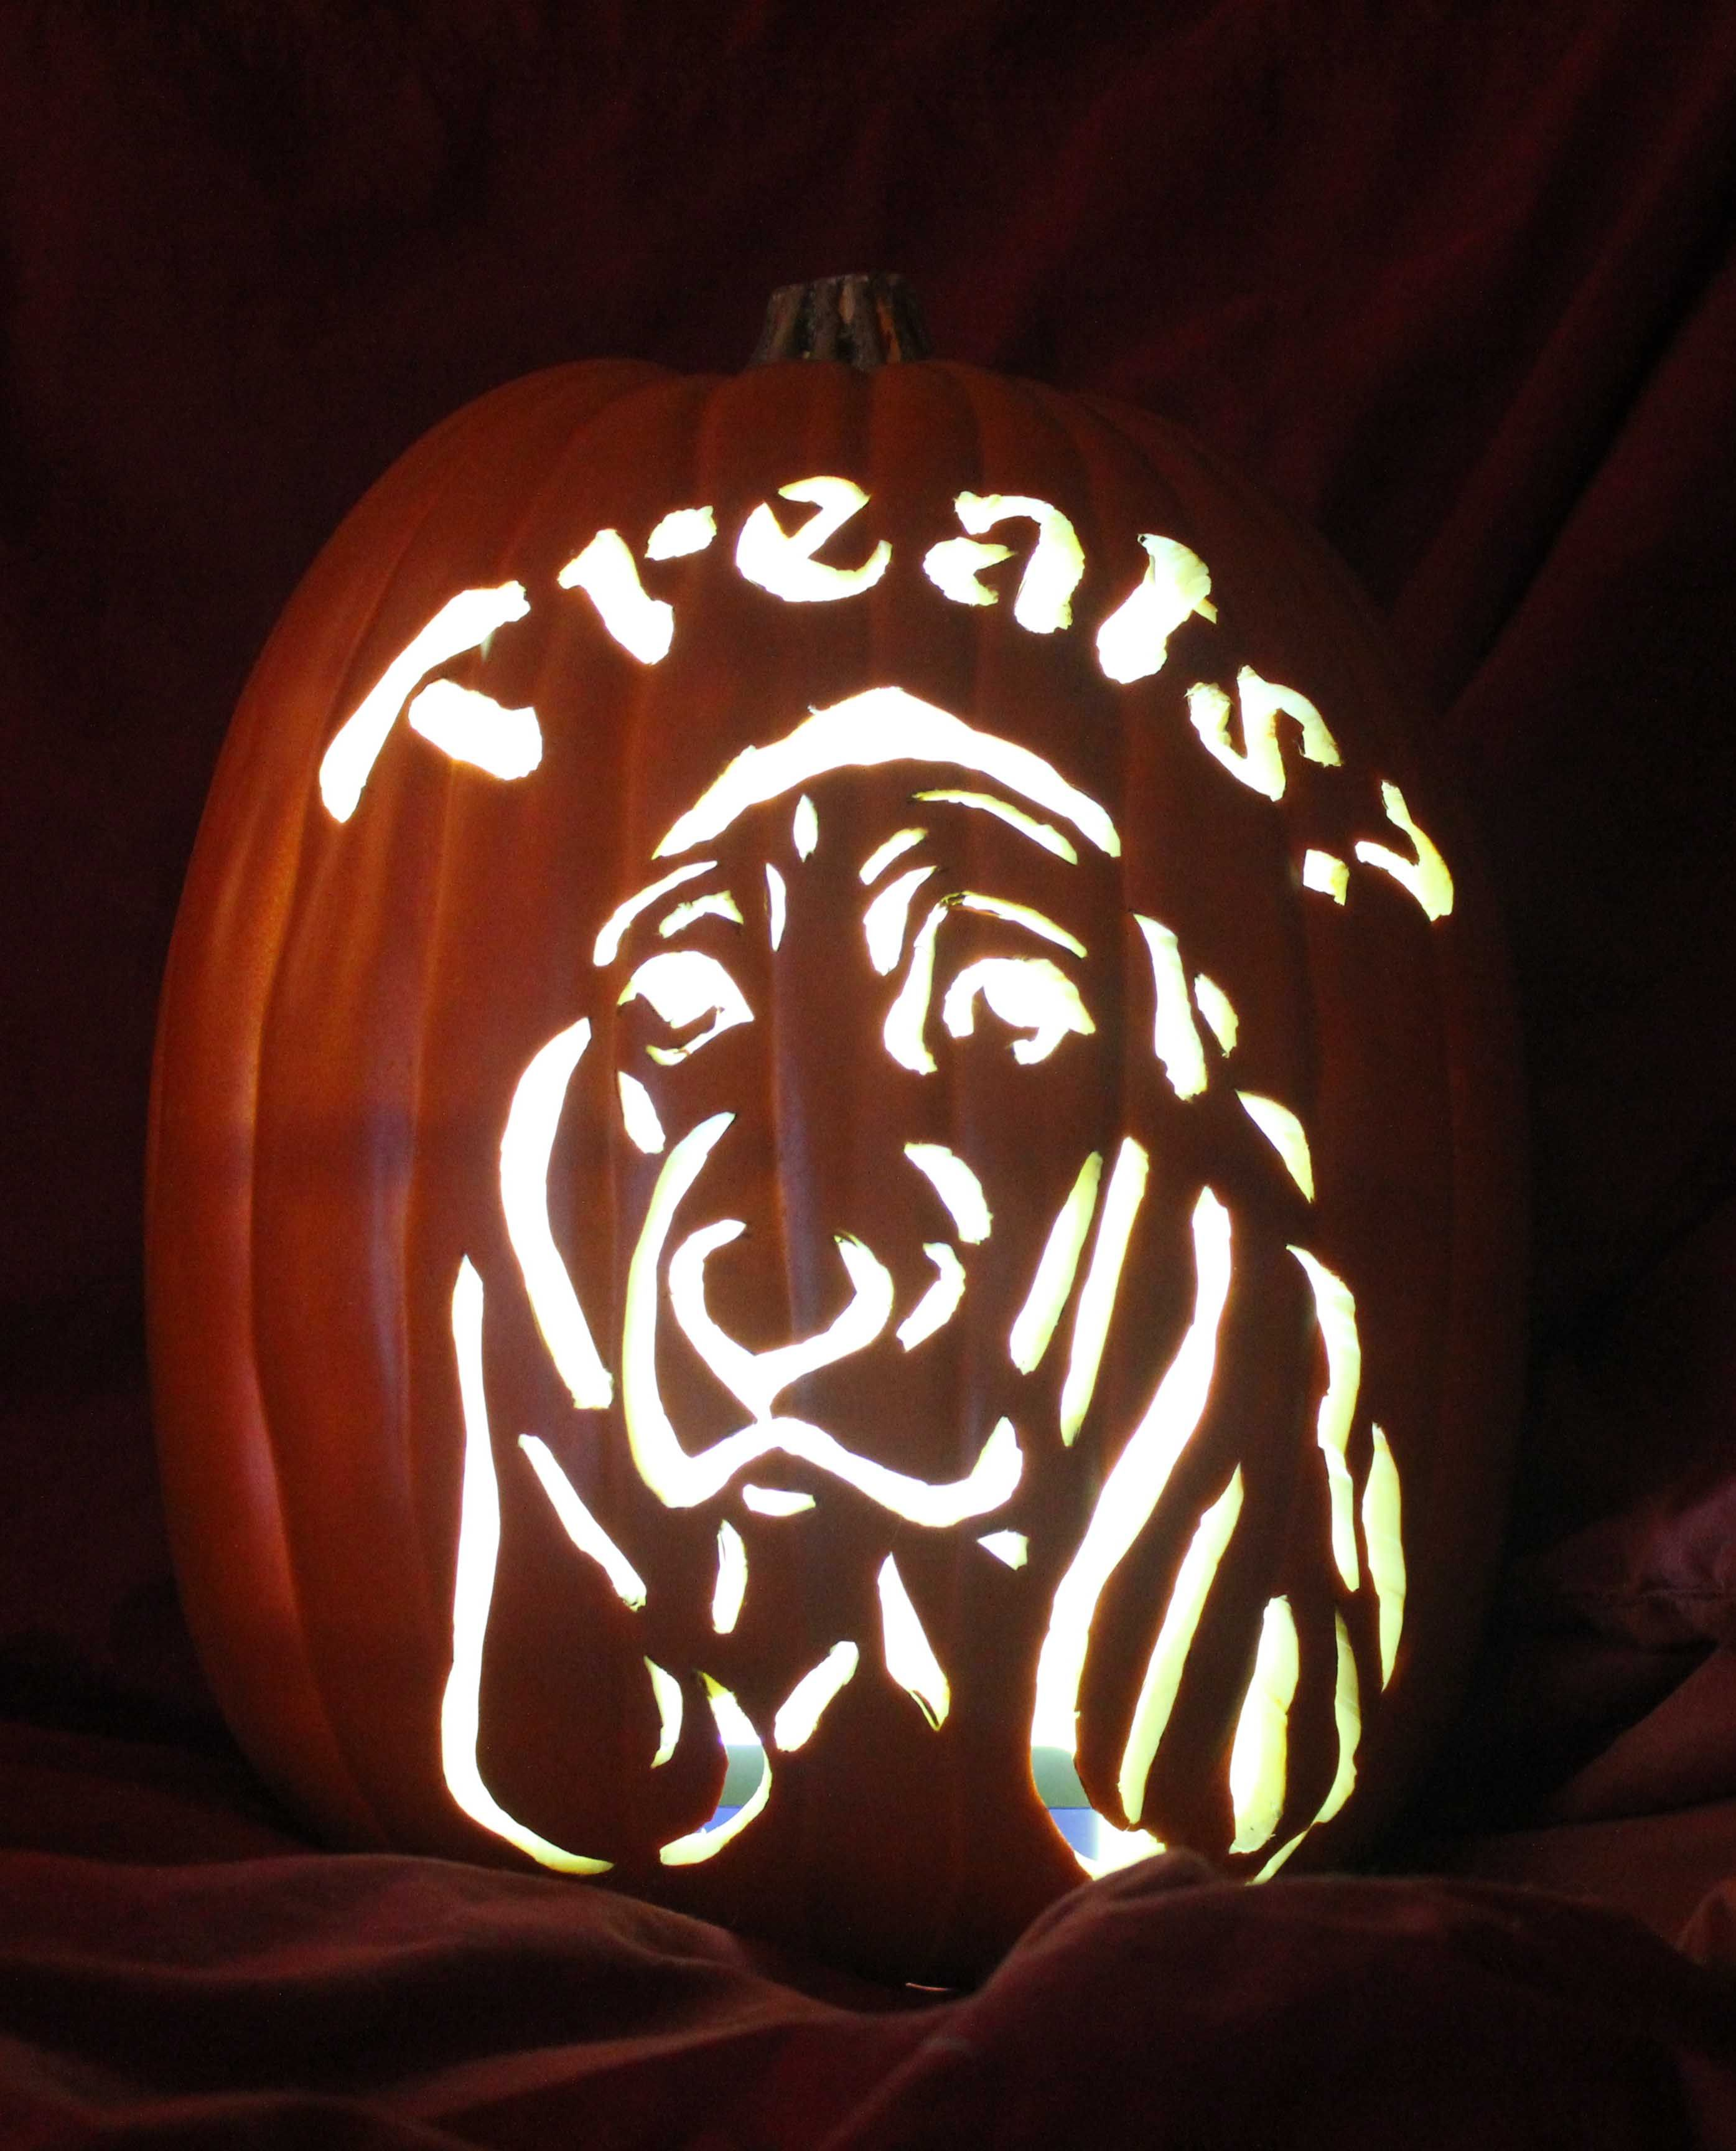 Craft Foam Pumpkin Carved With Basset Hound  Donated To